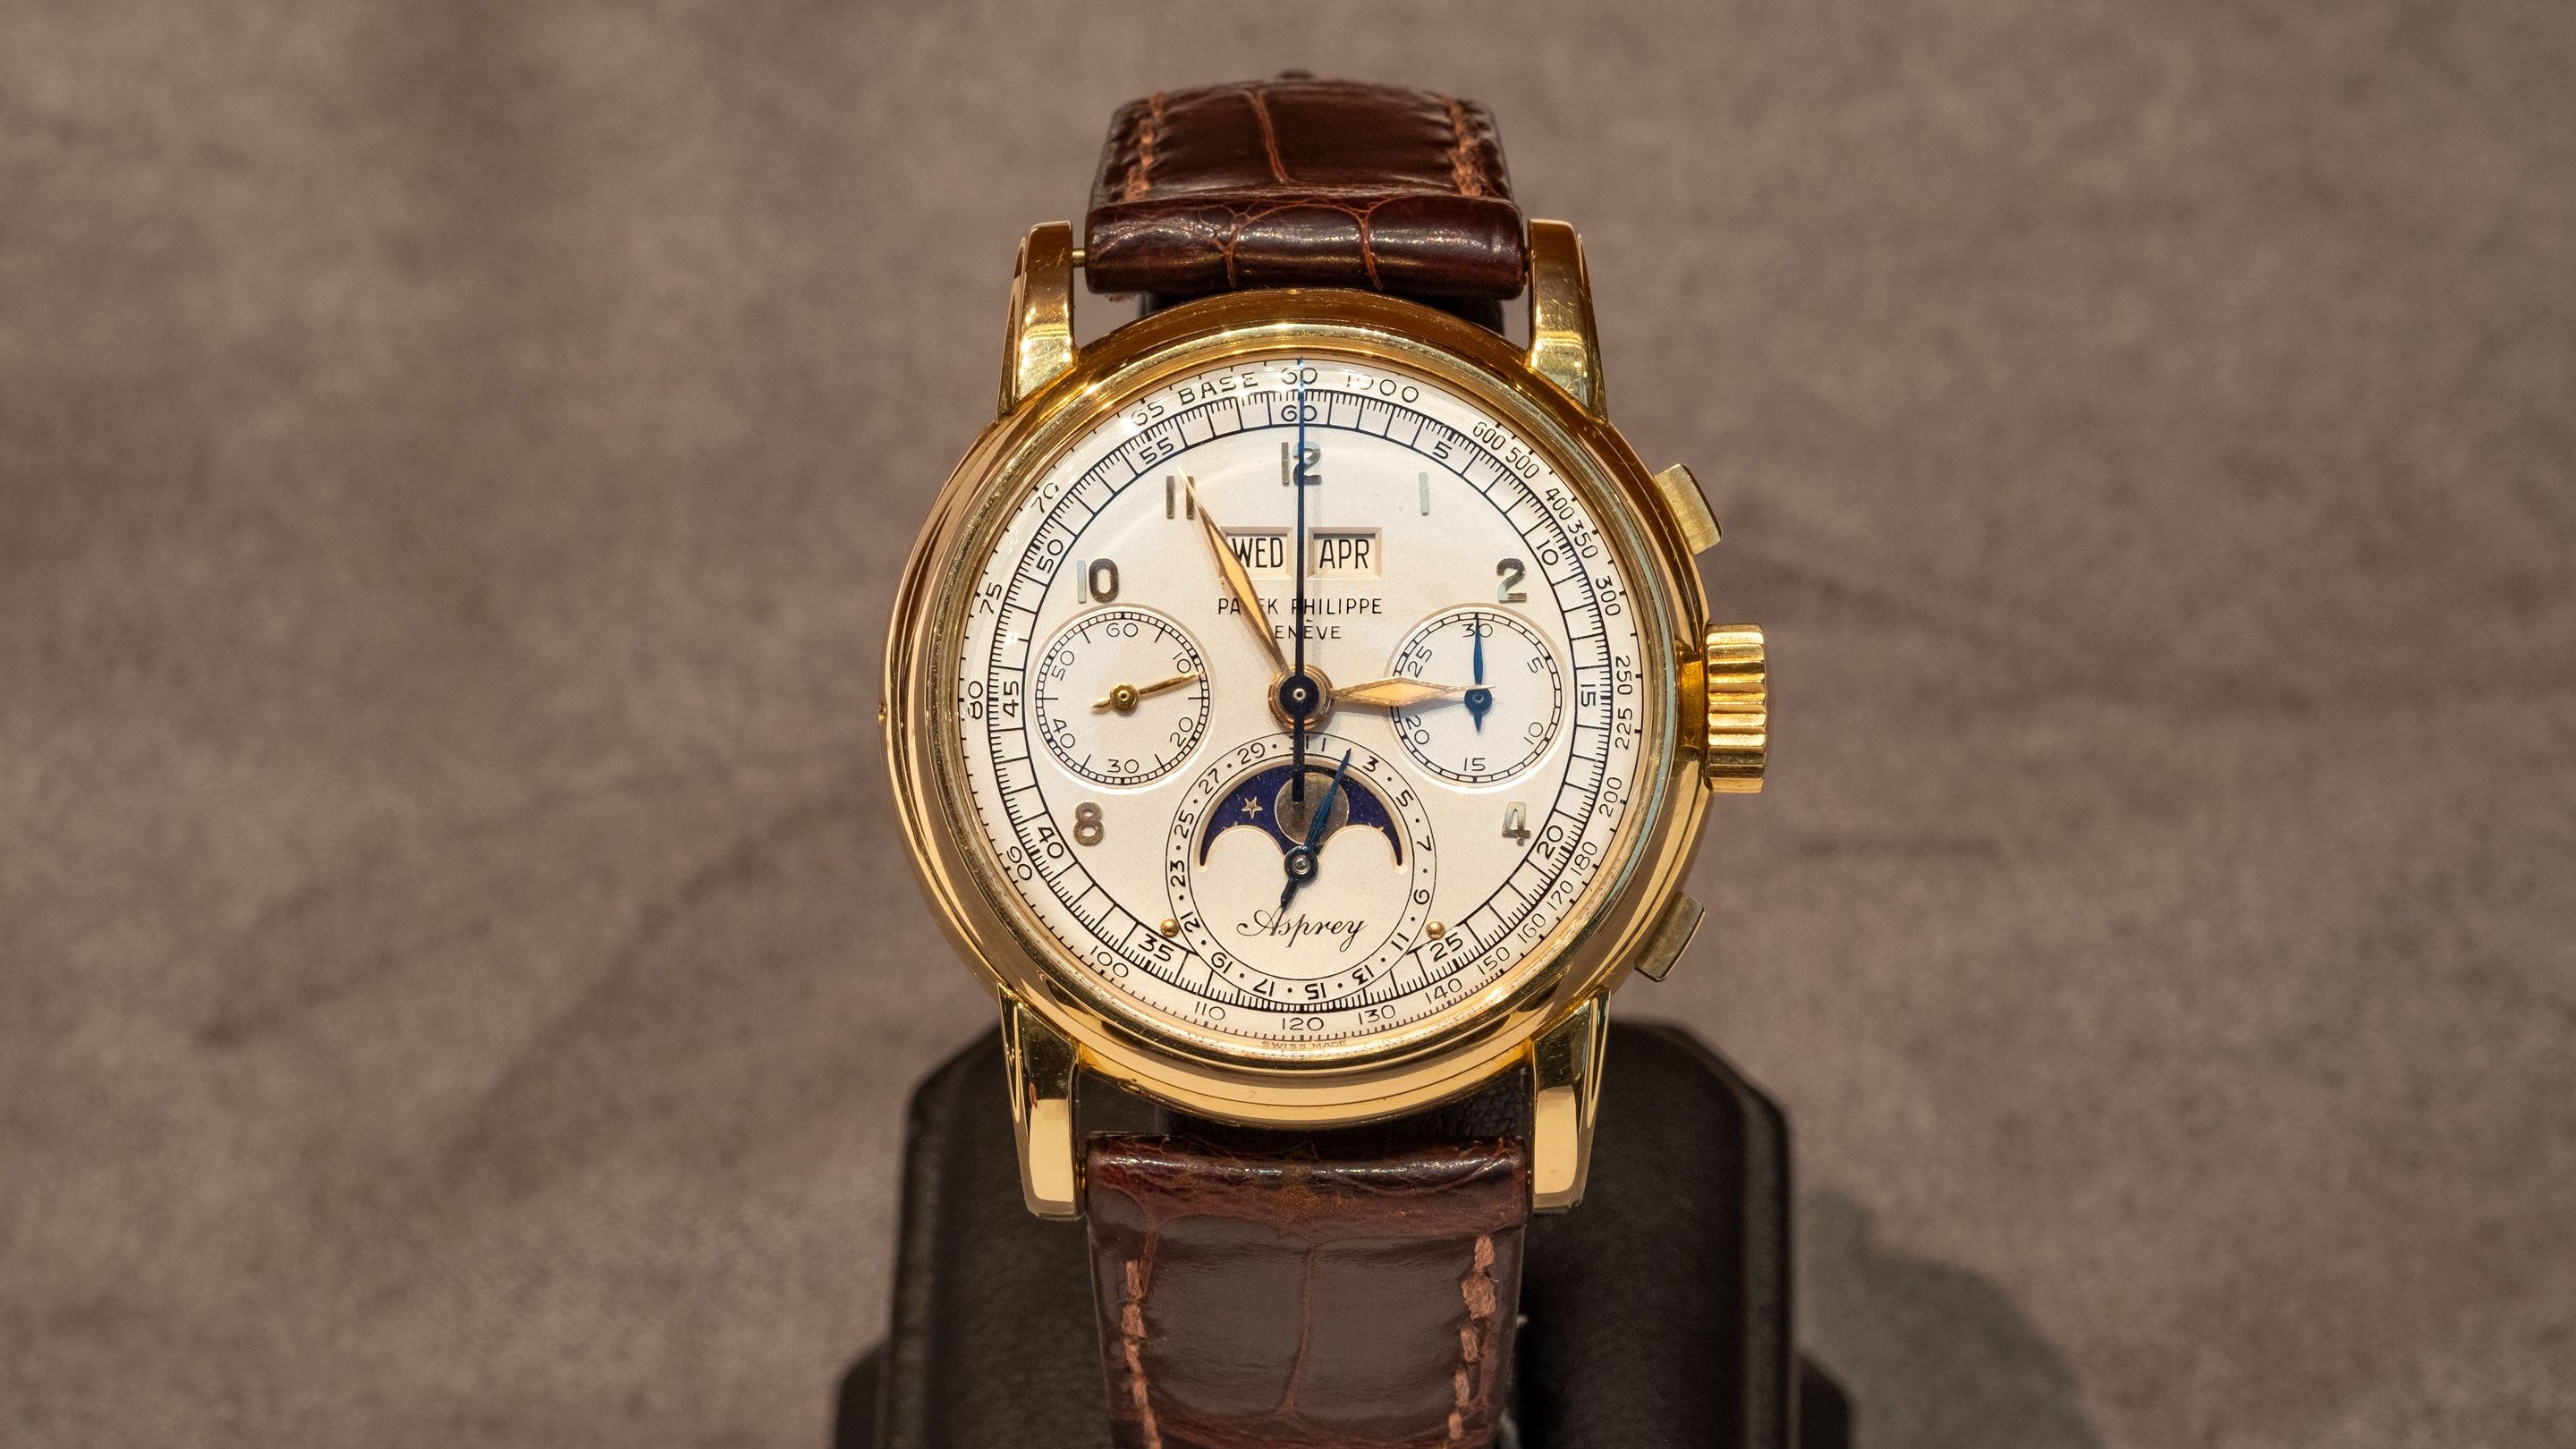 Patek Philippe 2499 The Asprey